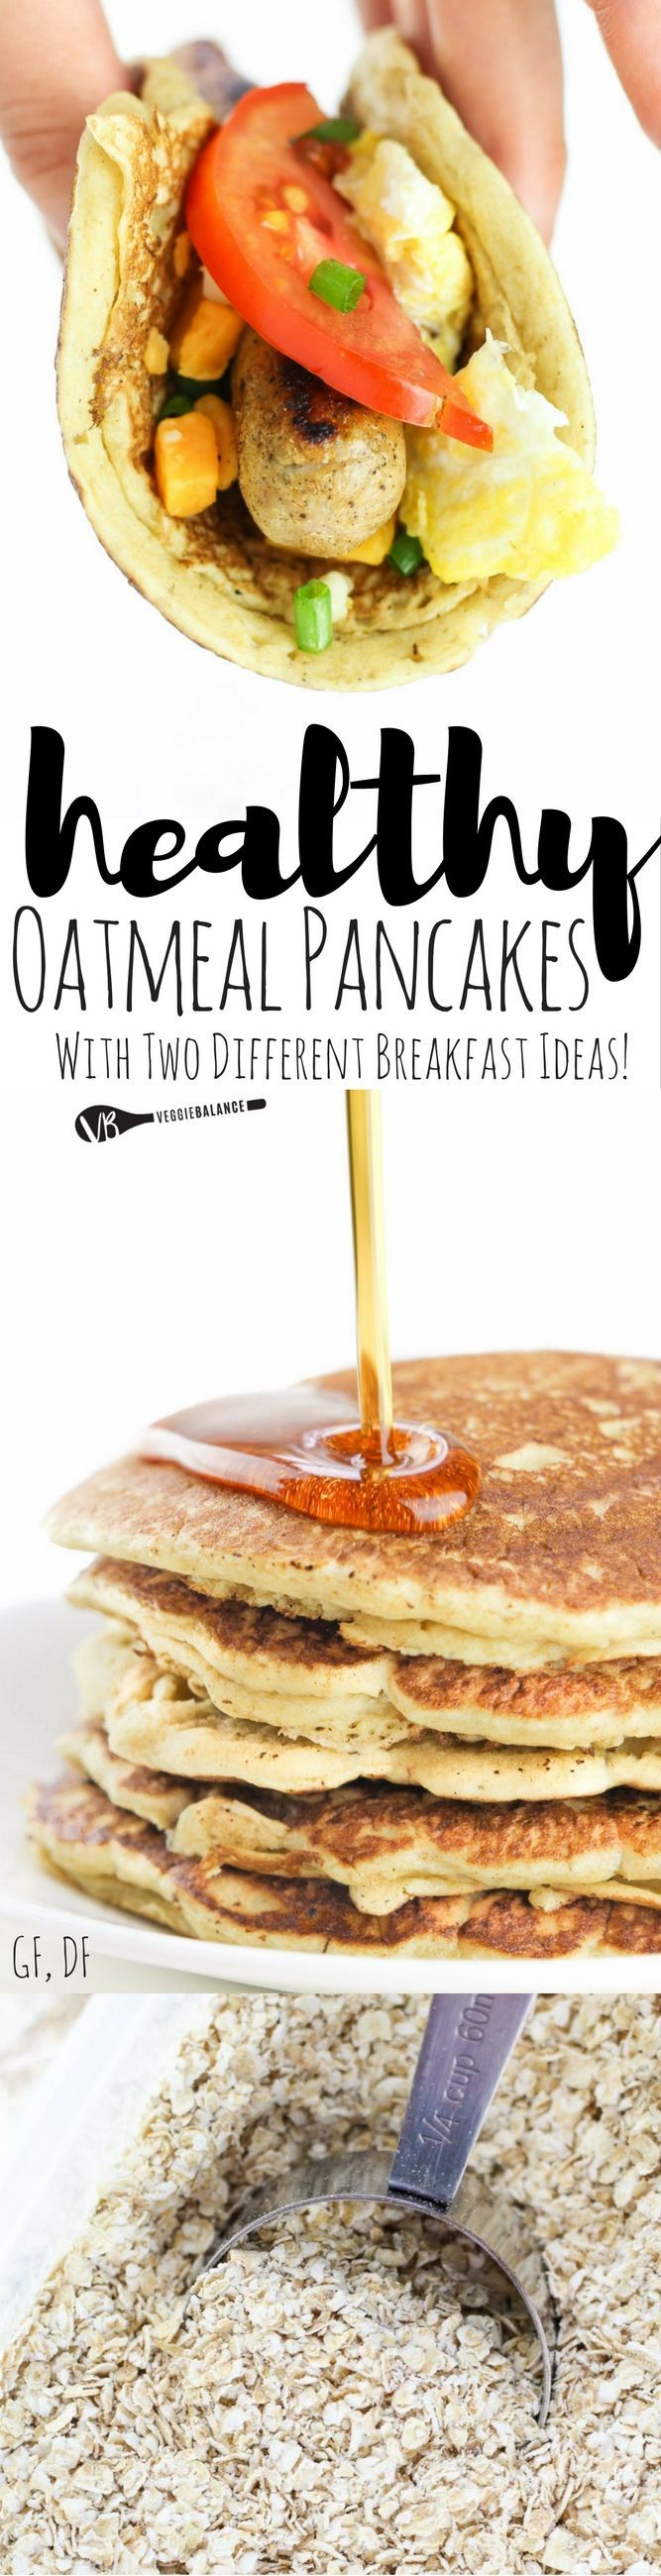 Oatmeal Pancakes recipe for delicious pancakes you can eat two ways. #BRMOats /bobsredmill/ #ad